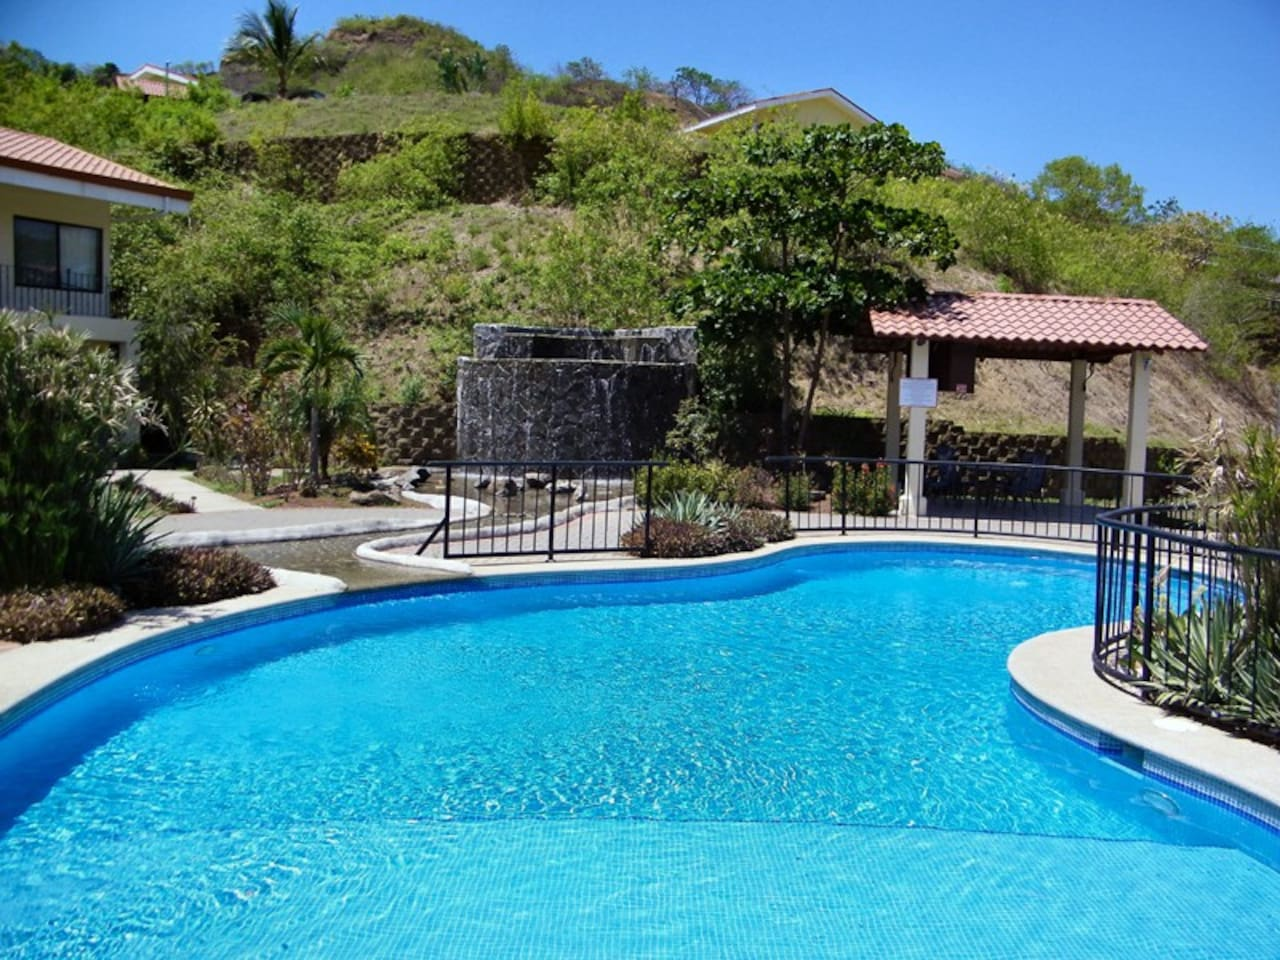 Beautifully maintained grounds with waterfall and well kept pool.